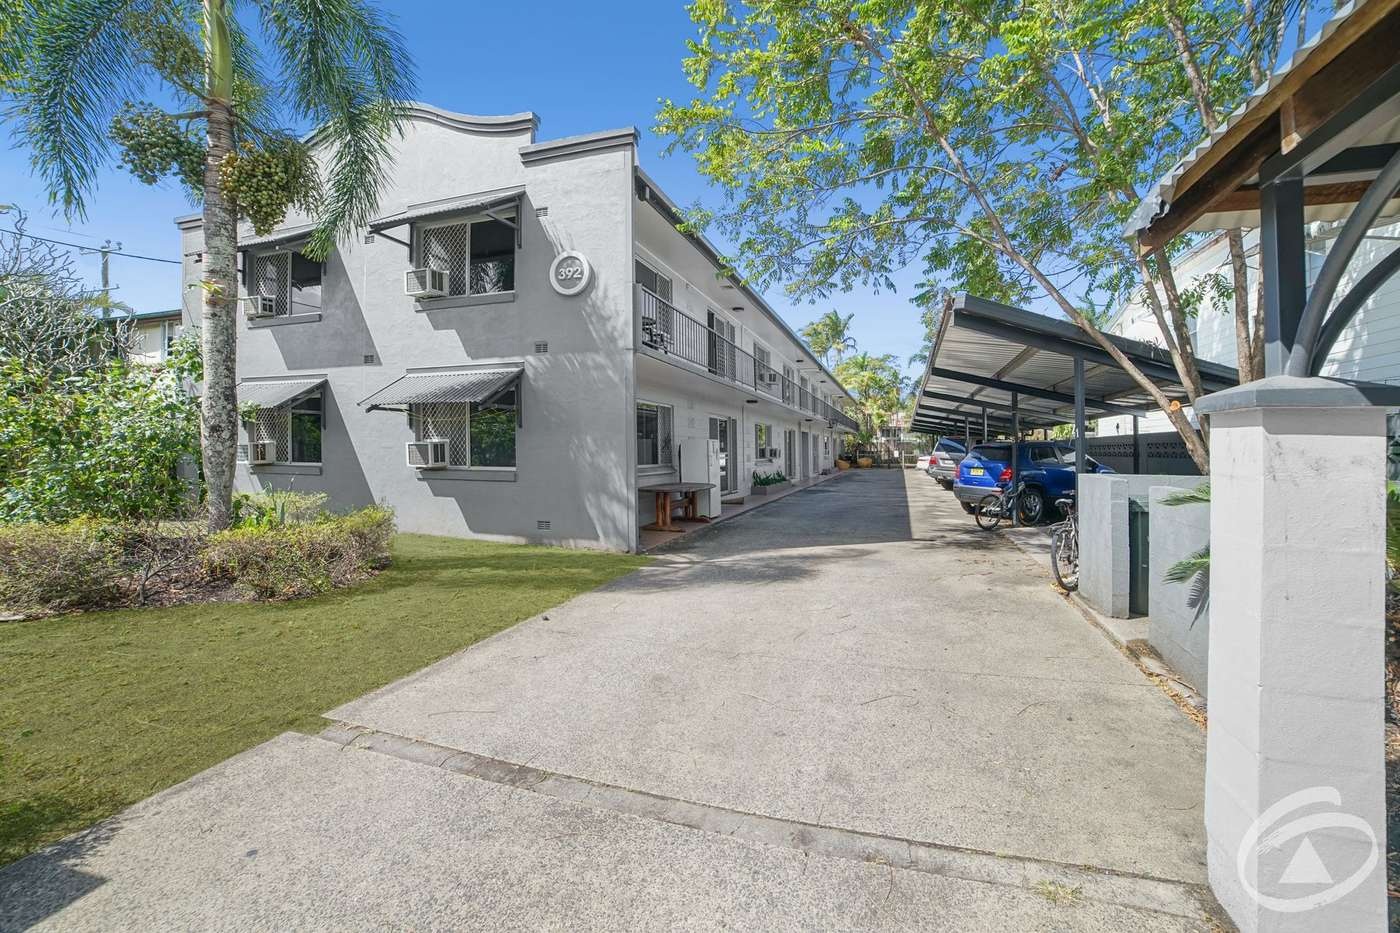 Main view of Homely unit listing, 5/392 Severin Street, Parramatta Park, QLD 4870